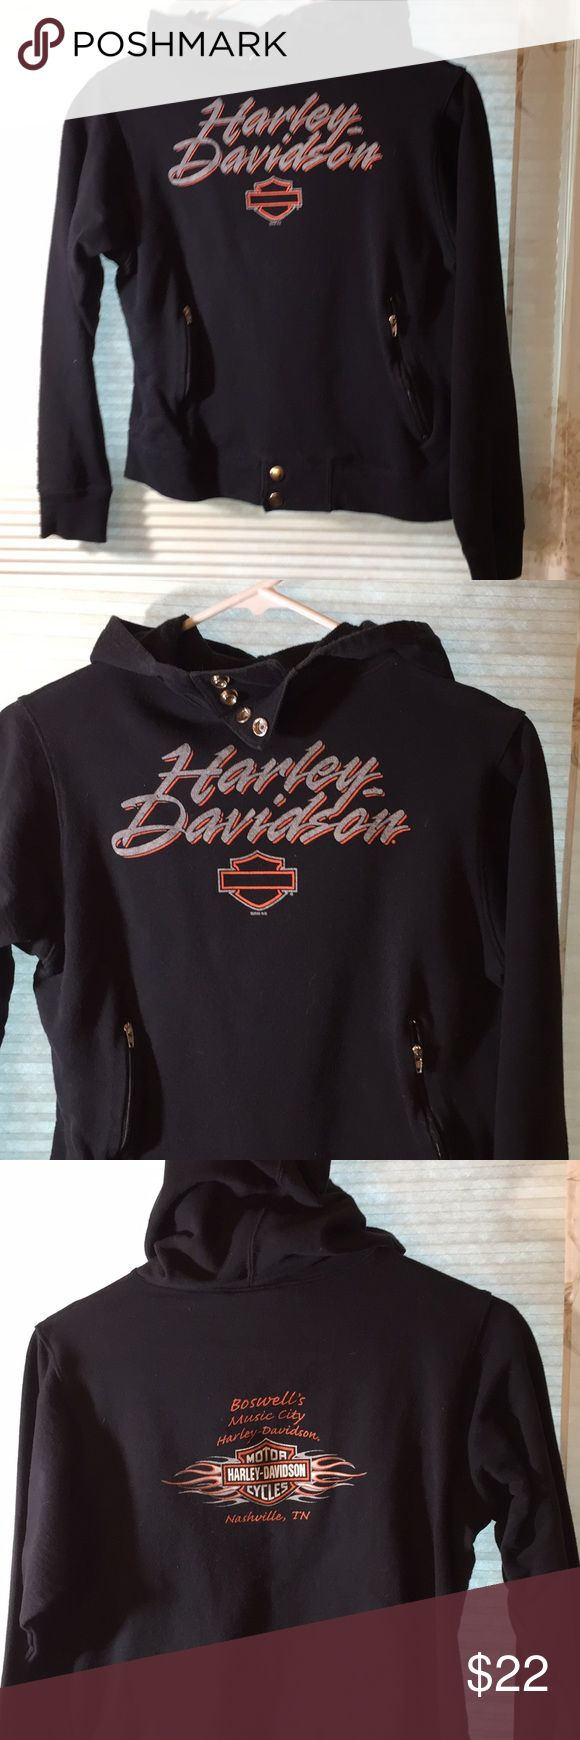 Harley Davidson Sweatshirt hoodie Nashville TN Super cute hooded sweatshirt with front zip pockets and snaps on the bottom and by the neck. Ride in style! Harley-Davidson Tops Sweatshirts & Hoodies